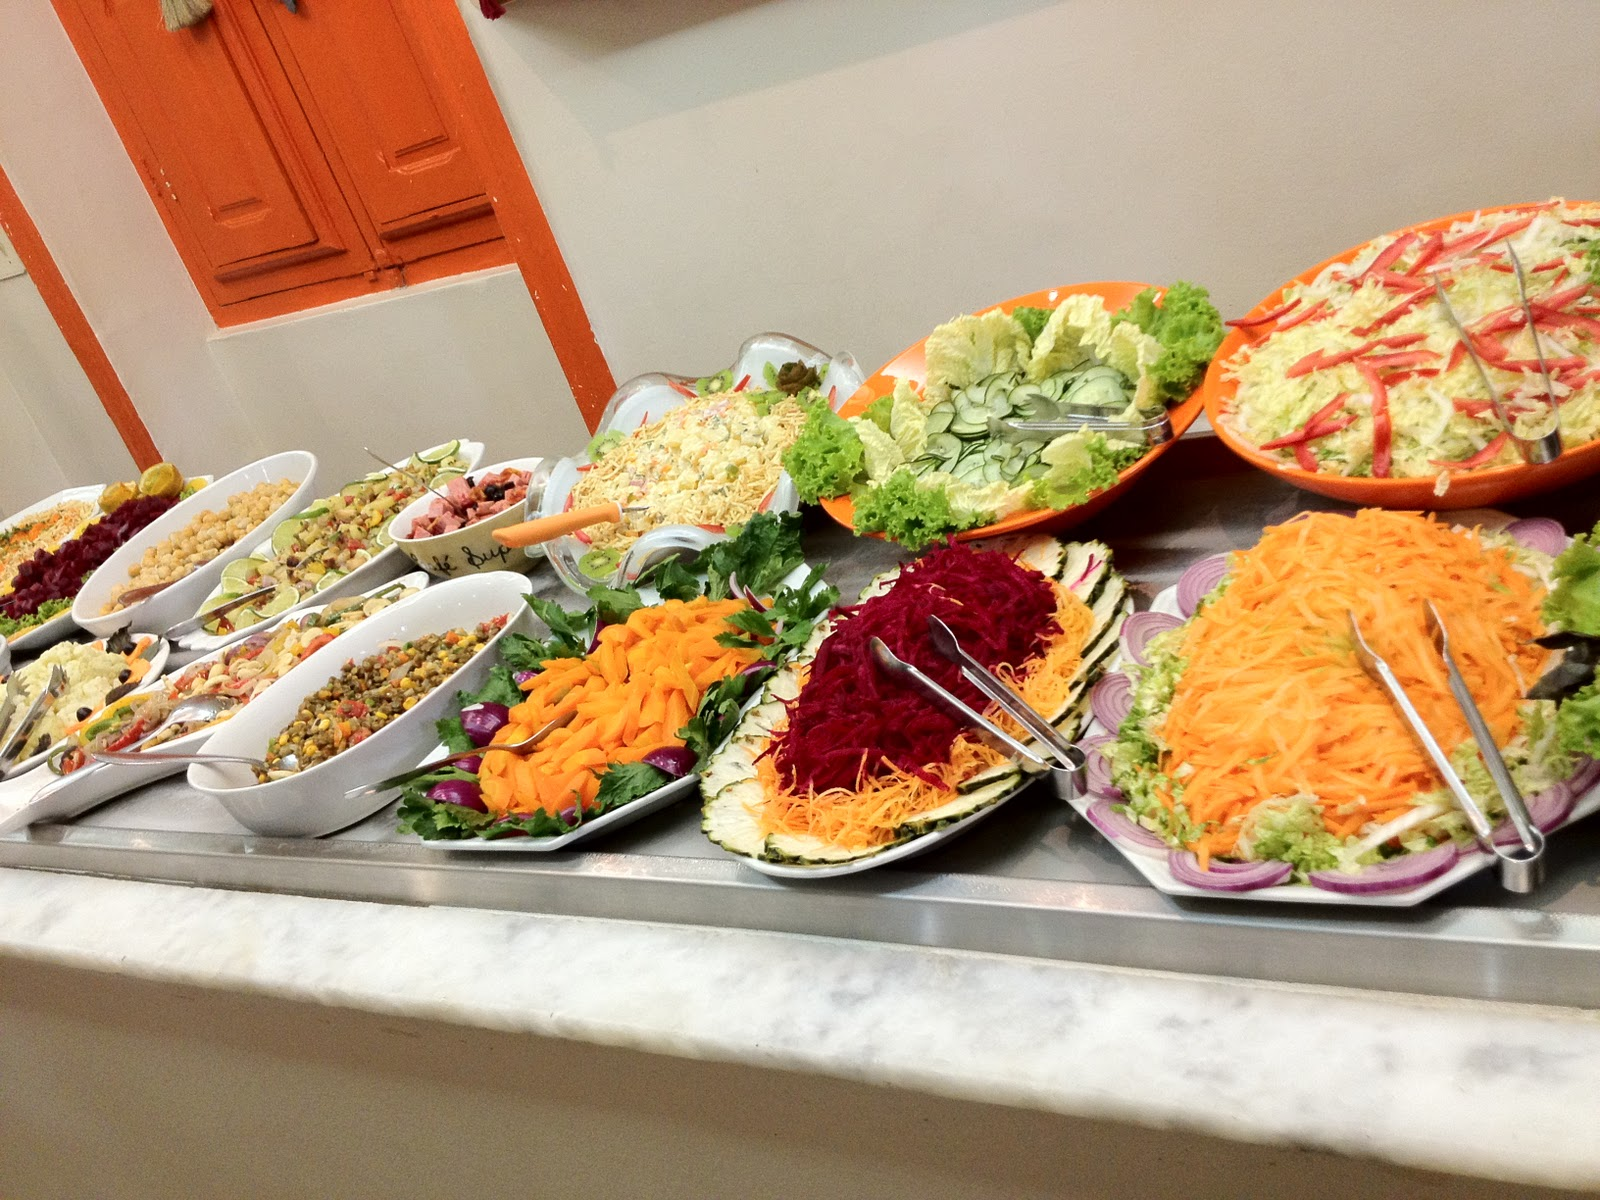 SaladBar Chefs Table Catering Catering In Philadelphia PA - Chef's table catering